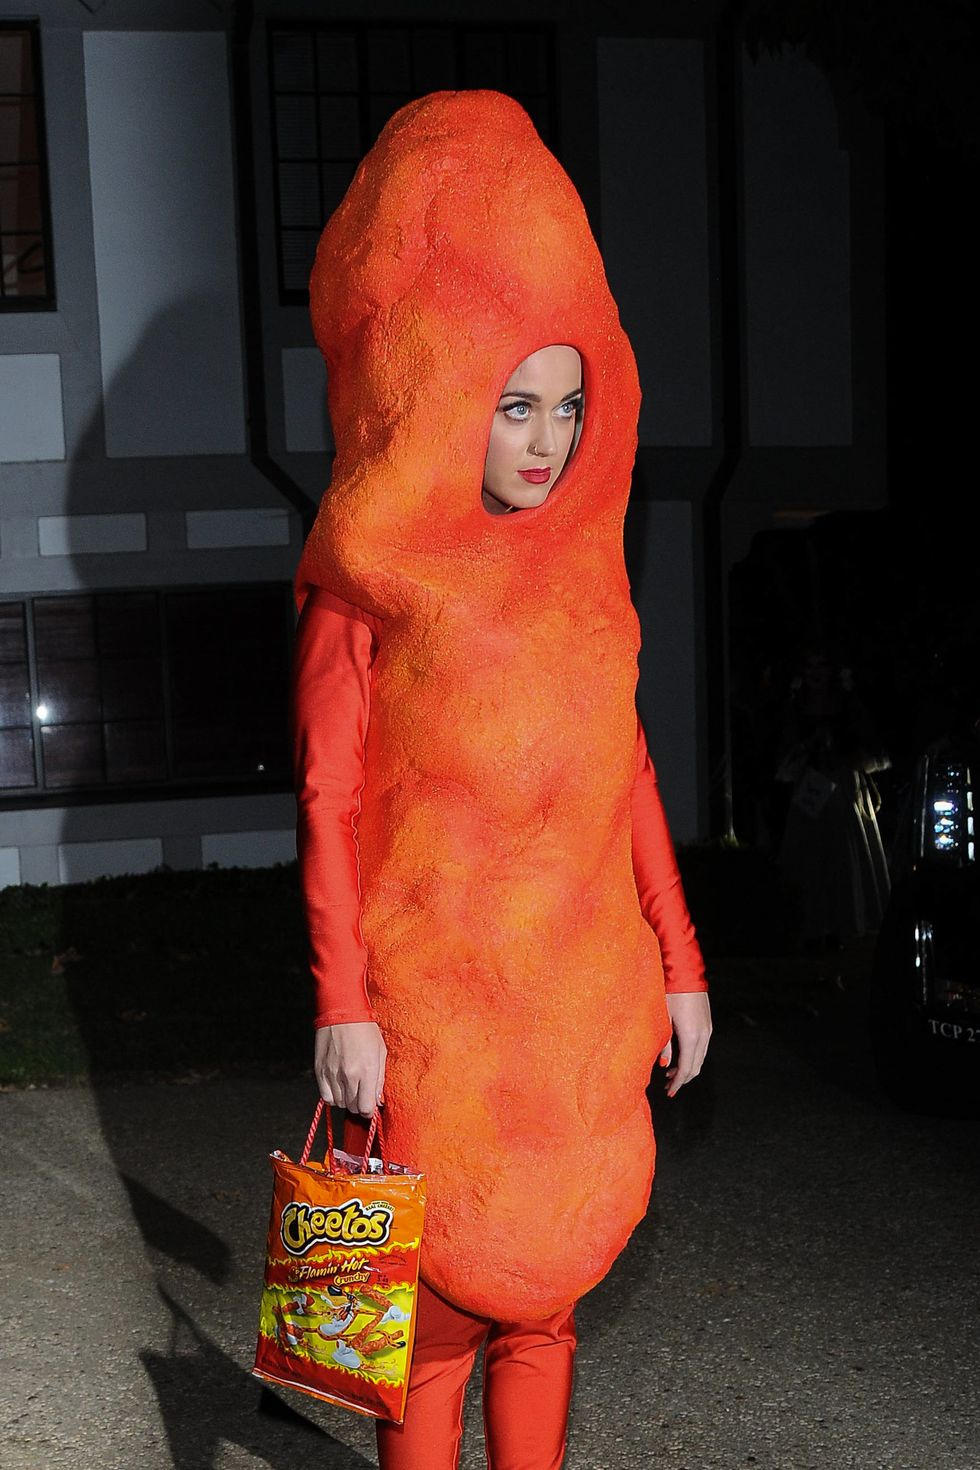 Katy Petty looking funny, dressed as an orange Cheeto. She's wearing head-to-toe orange and holding a bag of Cheetos.